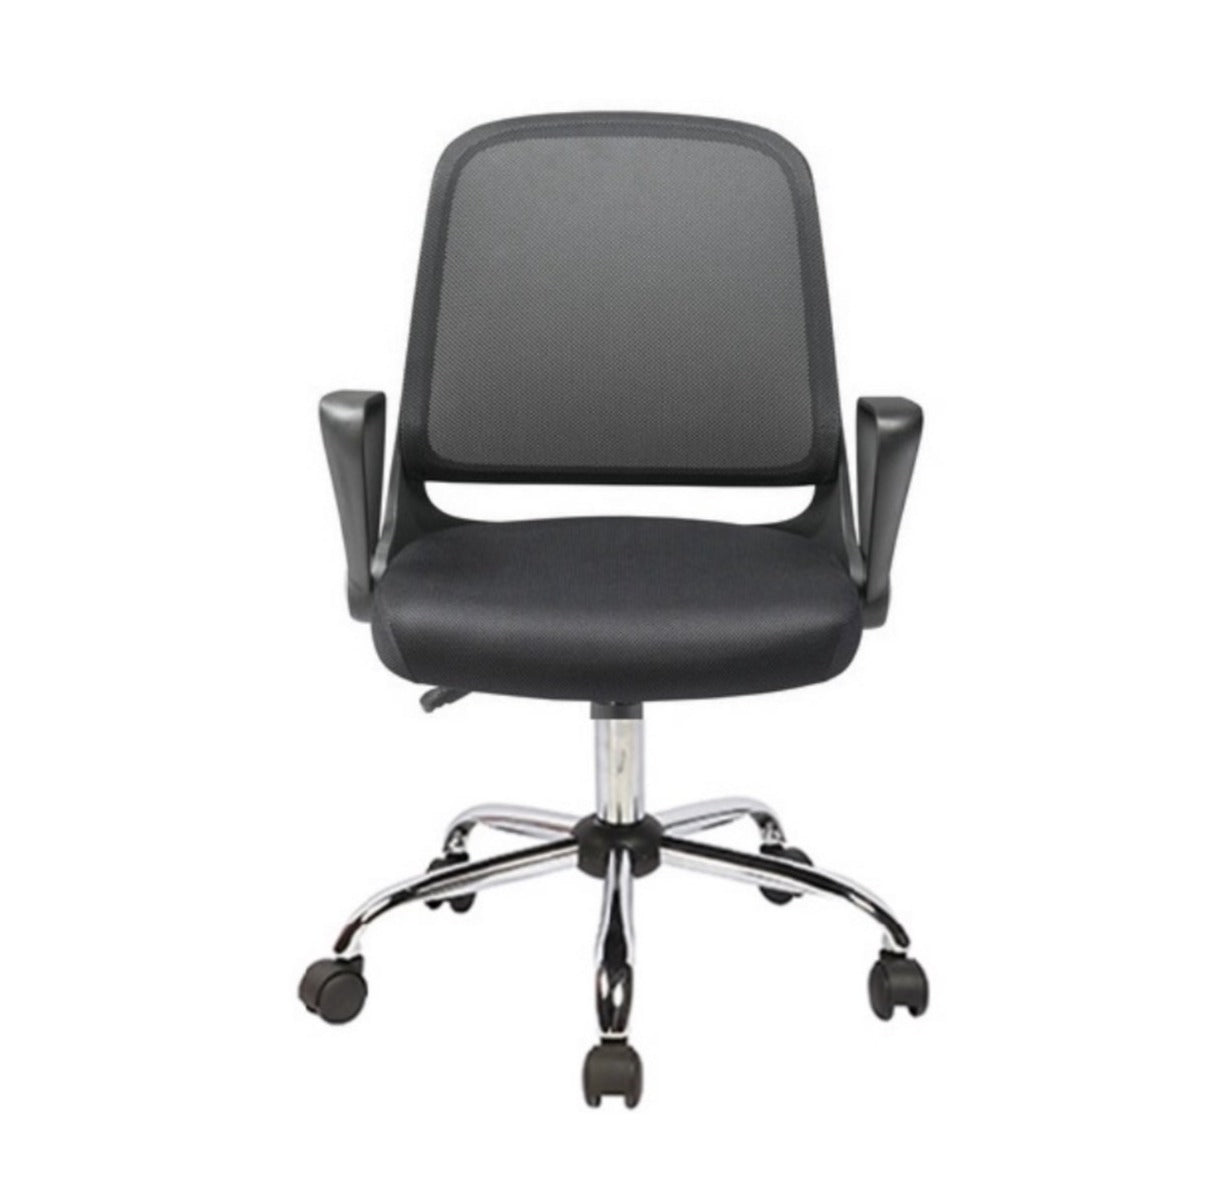 Low Back Mesh Office Chair 0158A Black